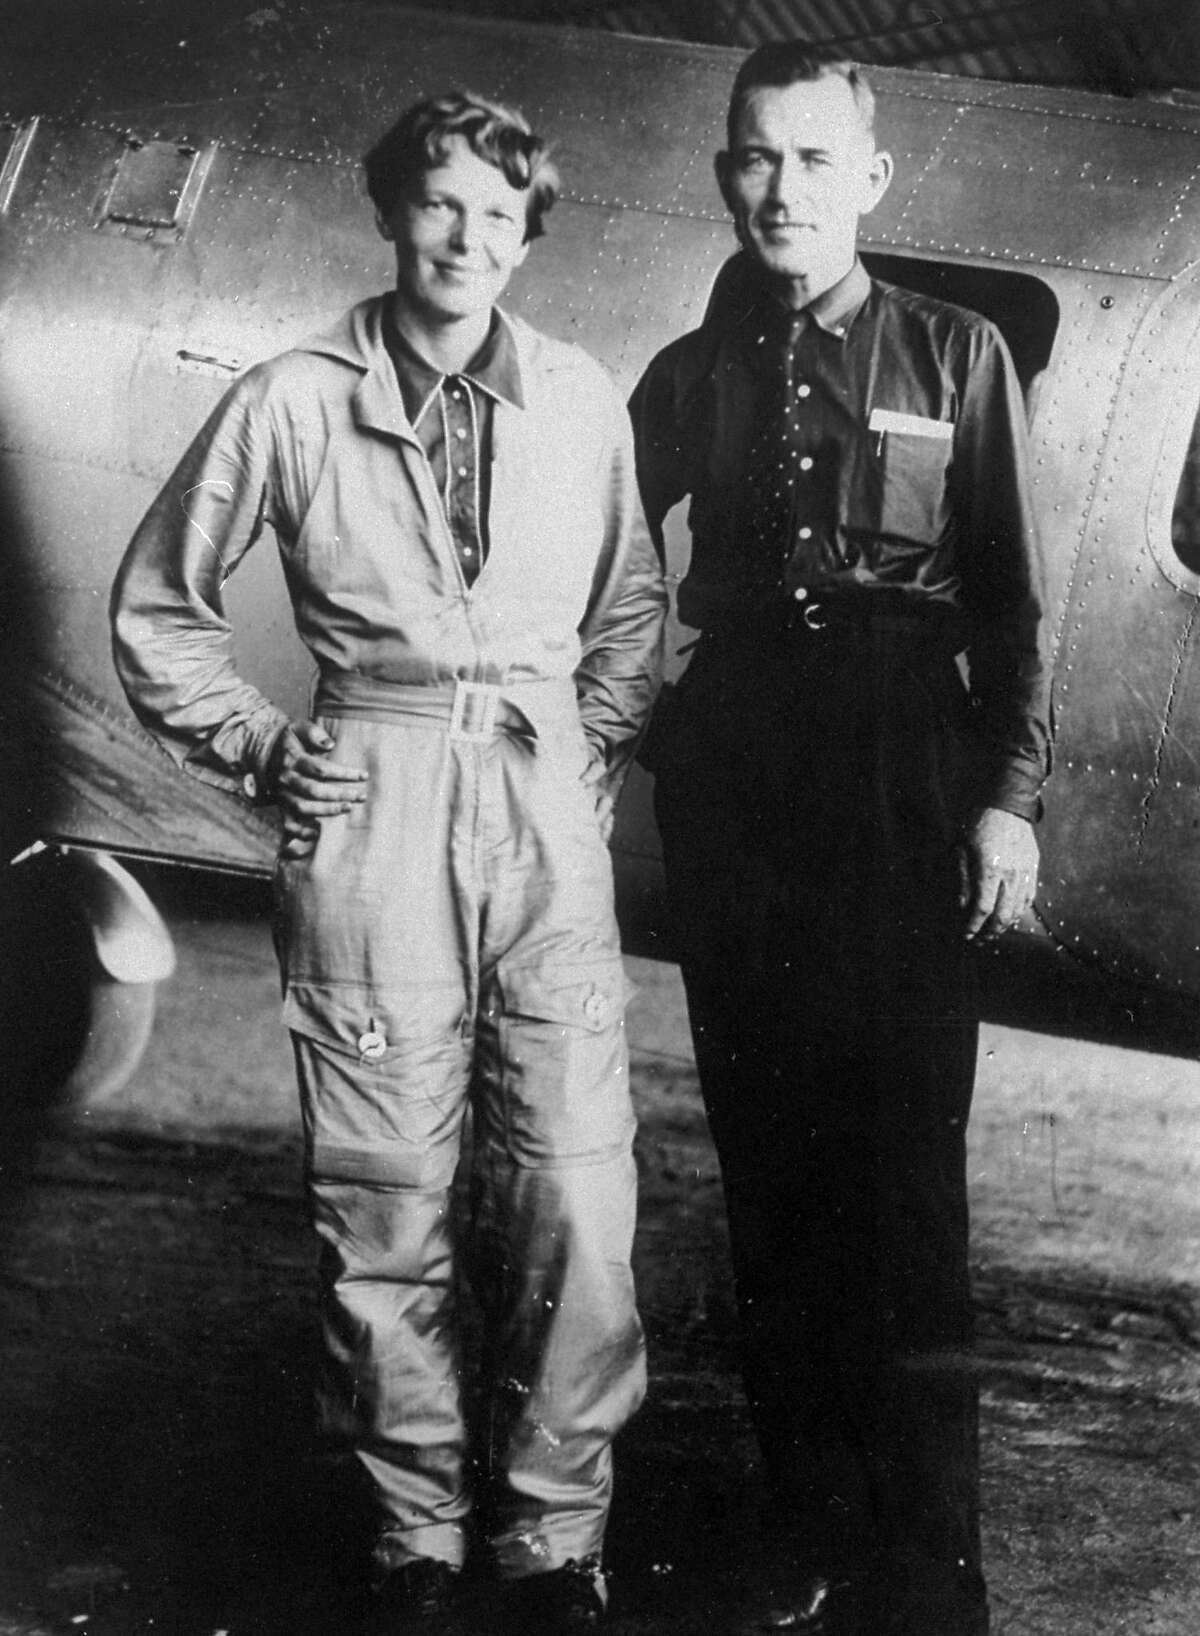 FILE - In this May 1937 file photo, aviator Amelia Earhart and her navigator, Fred Noonan, stand in front of their twin-engine Lockheed Electra airplane in Los Angeles, prior to their historic flight in which Earhart was attempting to become first female pilot to circle the globe. Earhart and her navigator, Fred Noonan, disappeared in the South Pacific in July 1937. (AP Photo/File)